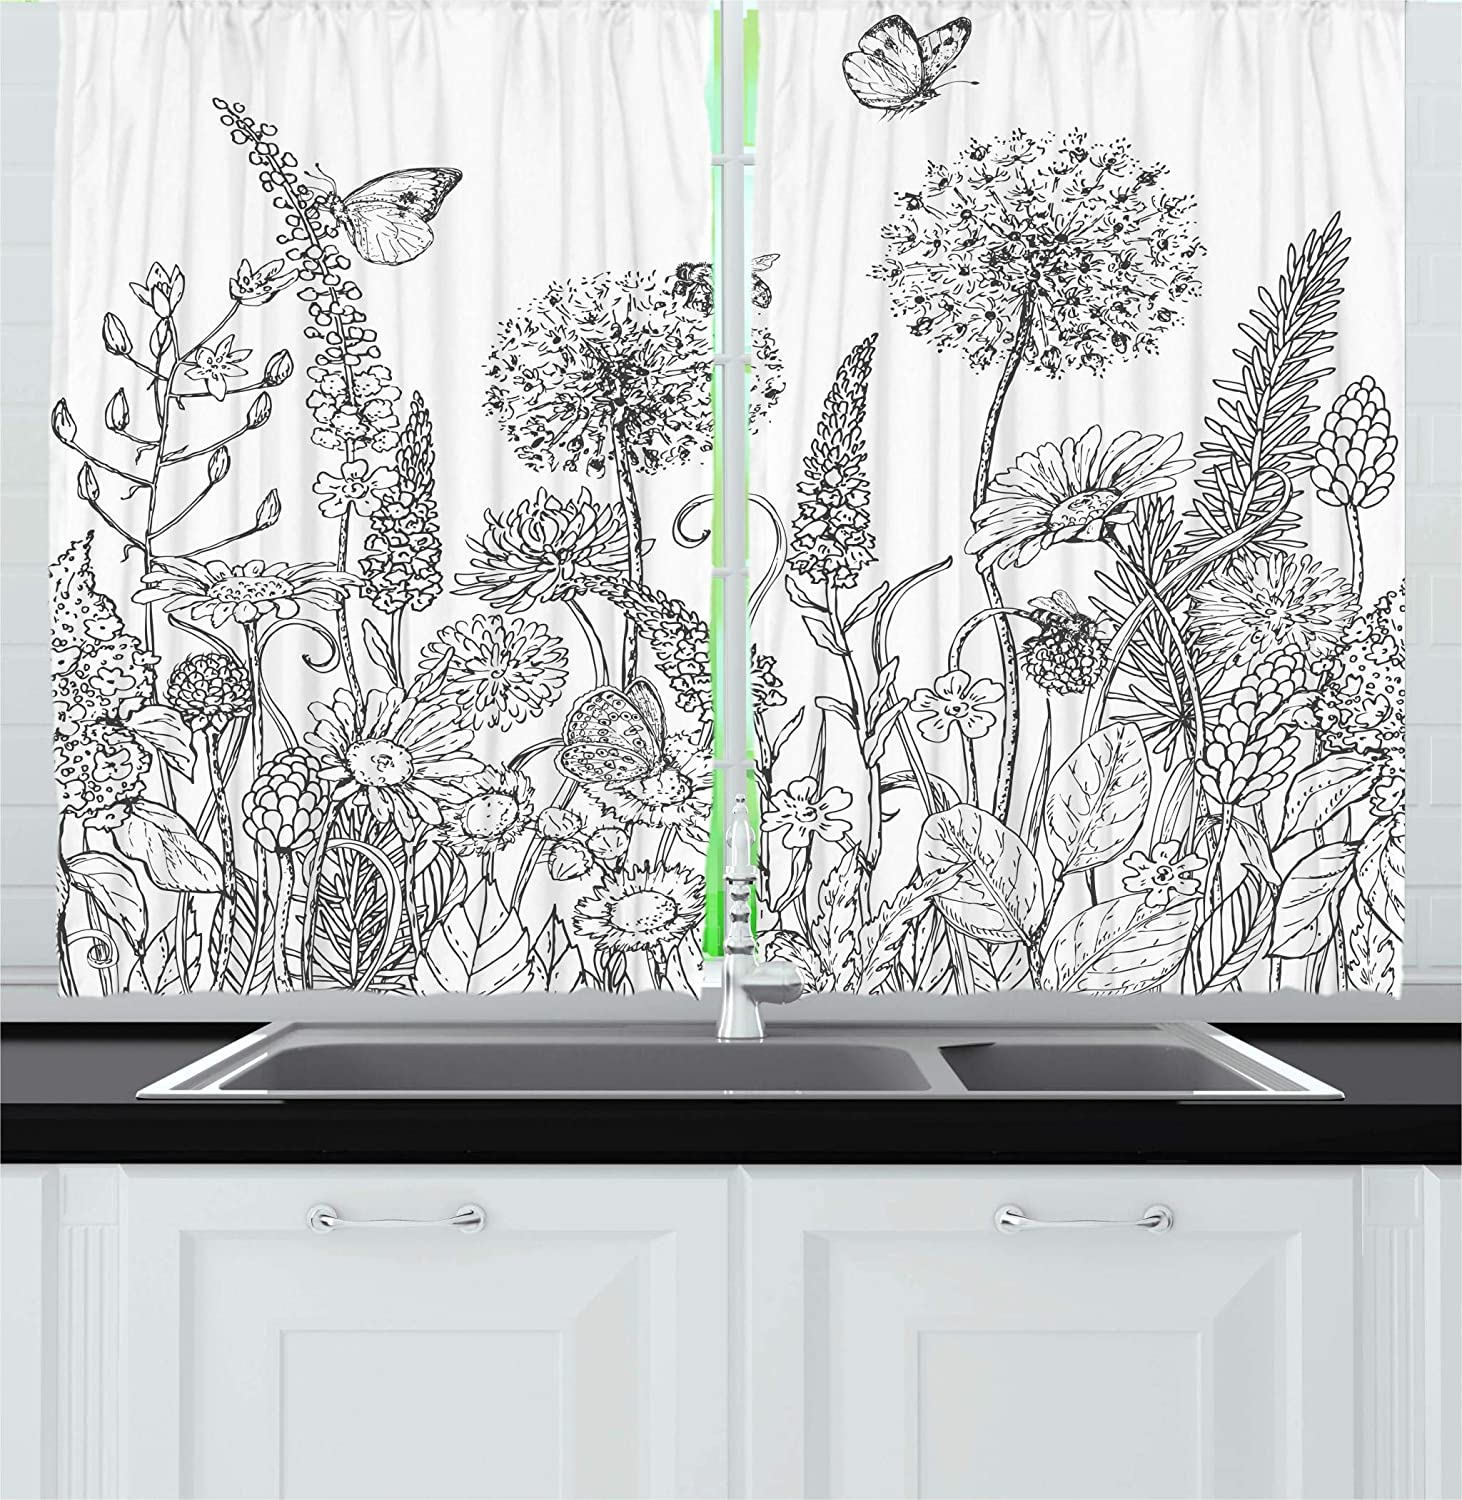 Ambesonne Floral Kitchen Curtains, Sketchy Hand Drawn Style Garden with Various Flowers Leaves and Grass Image, Window Drapes 2 Panel Set for Kitchen Cafe Decor, 55